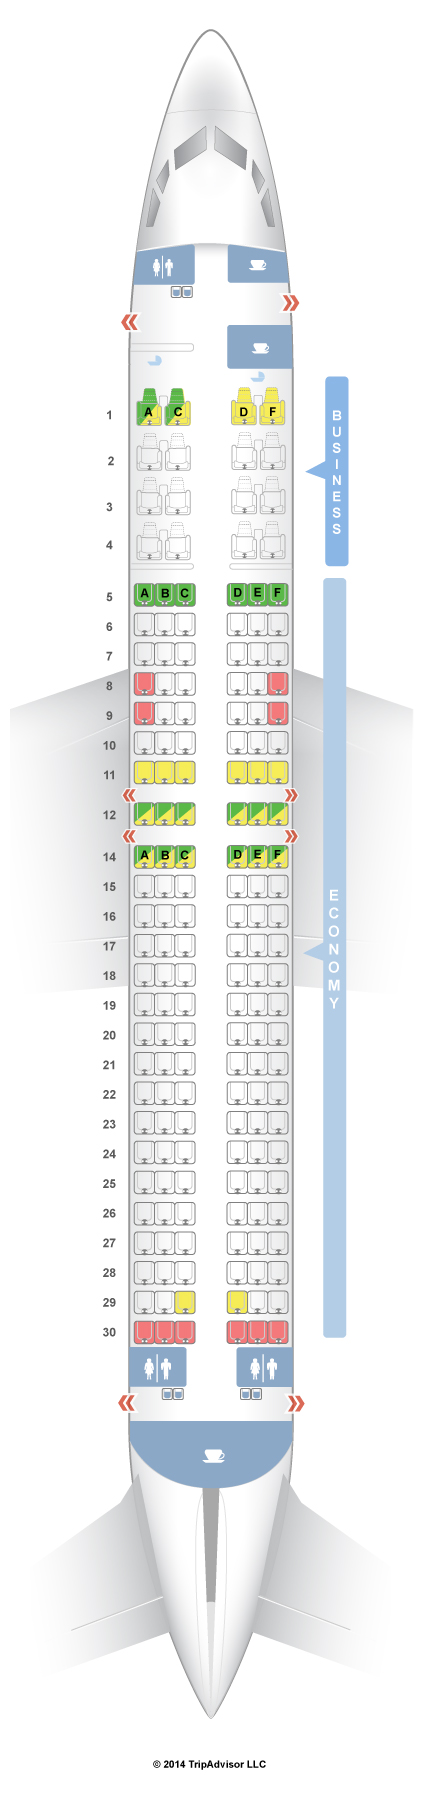 20 Unique Delta Airbus A321 Seating Chart